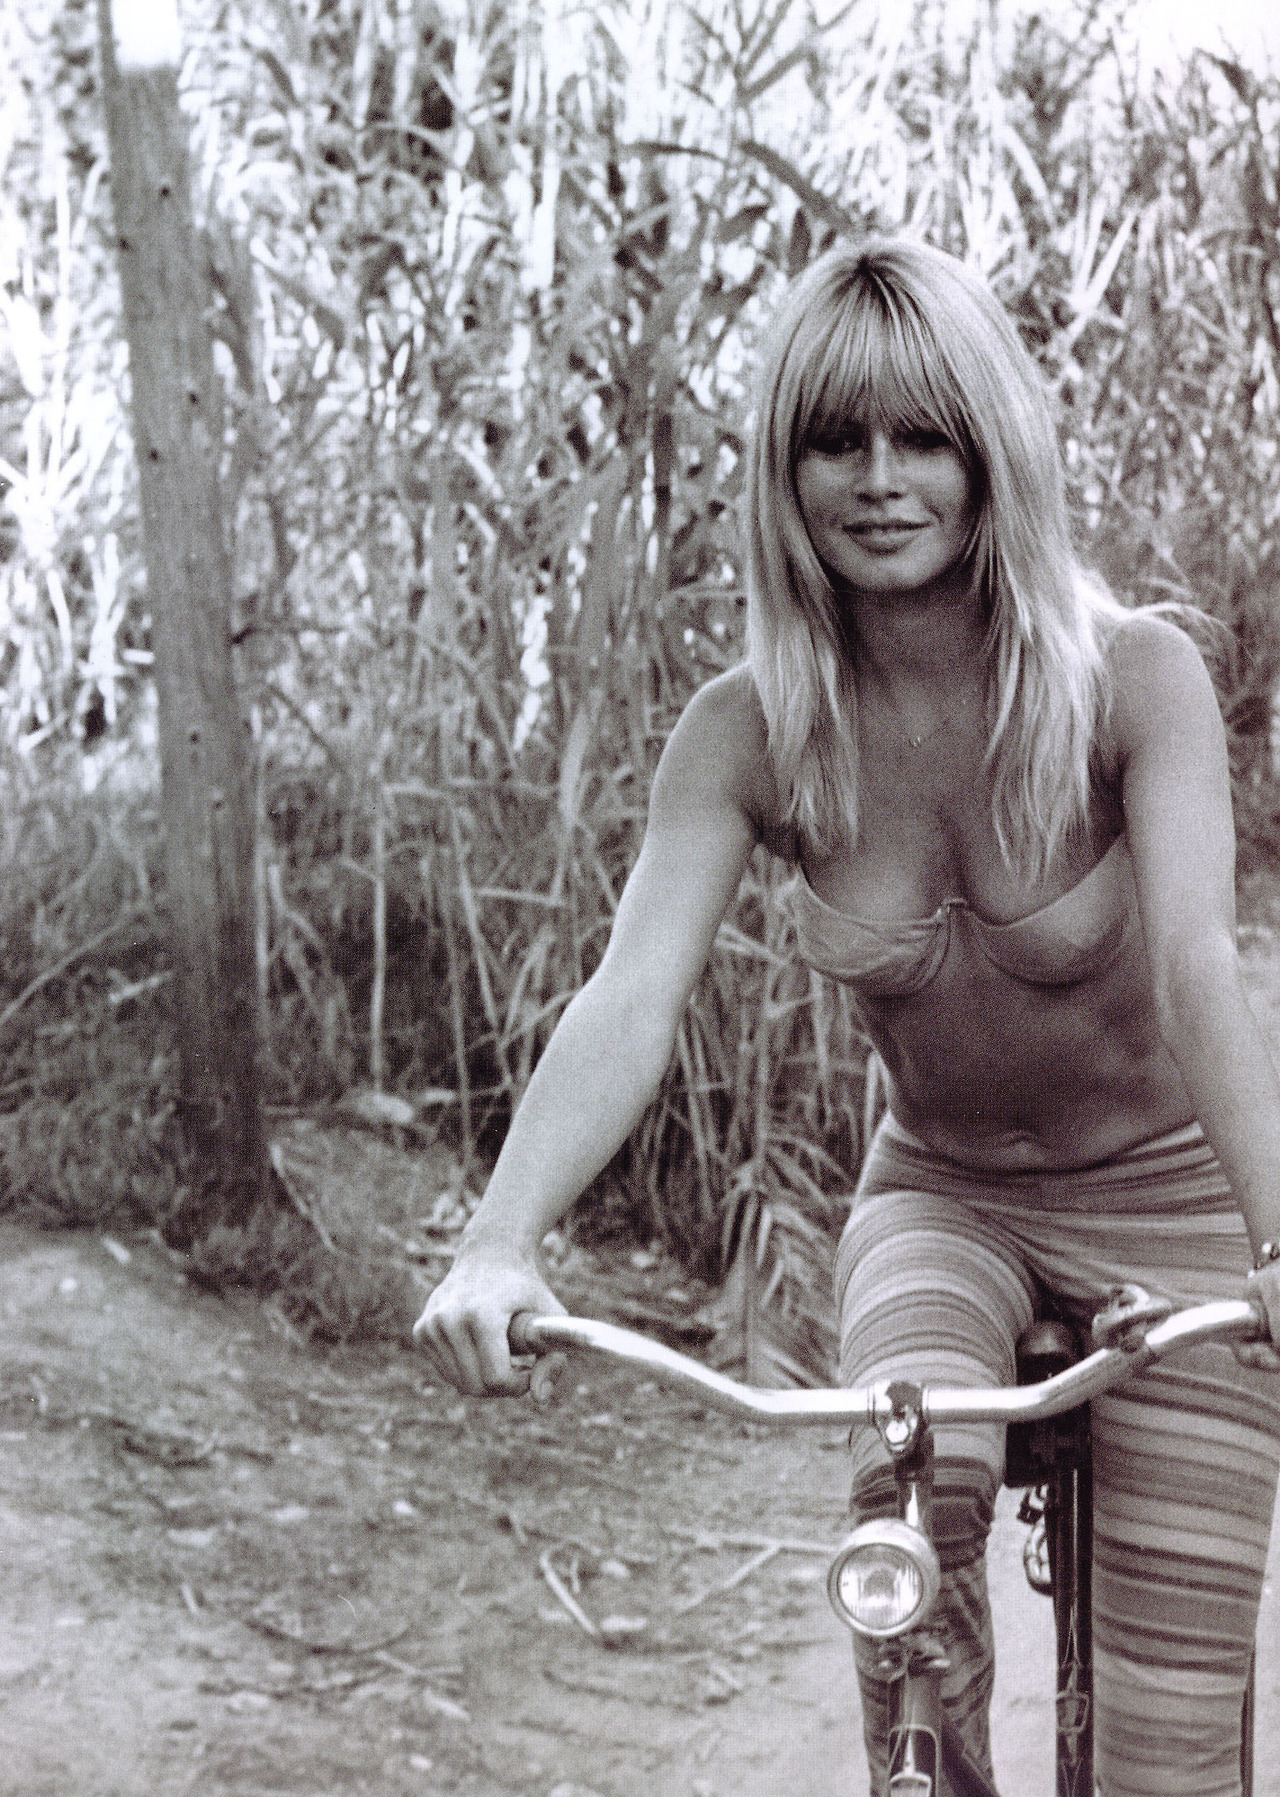 Retro downblouse Brigitte Bardot rides a bicycle in her underwear